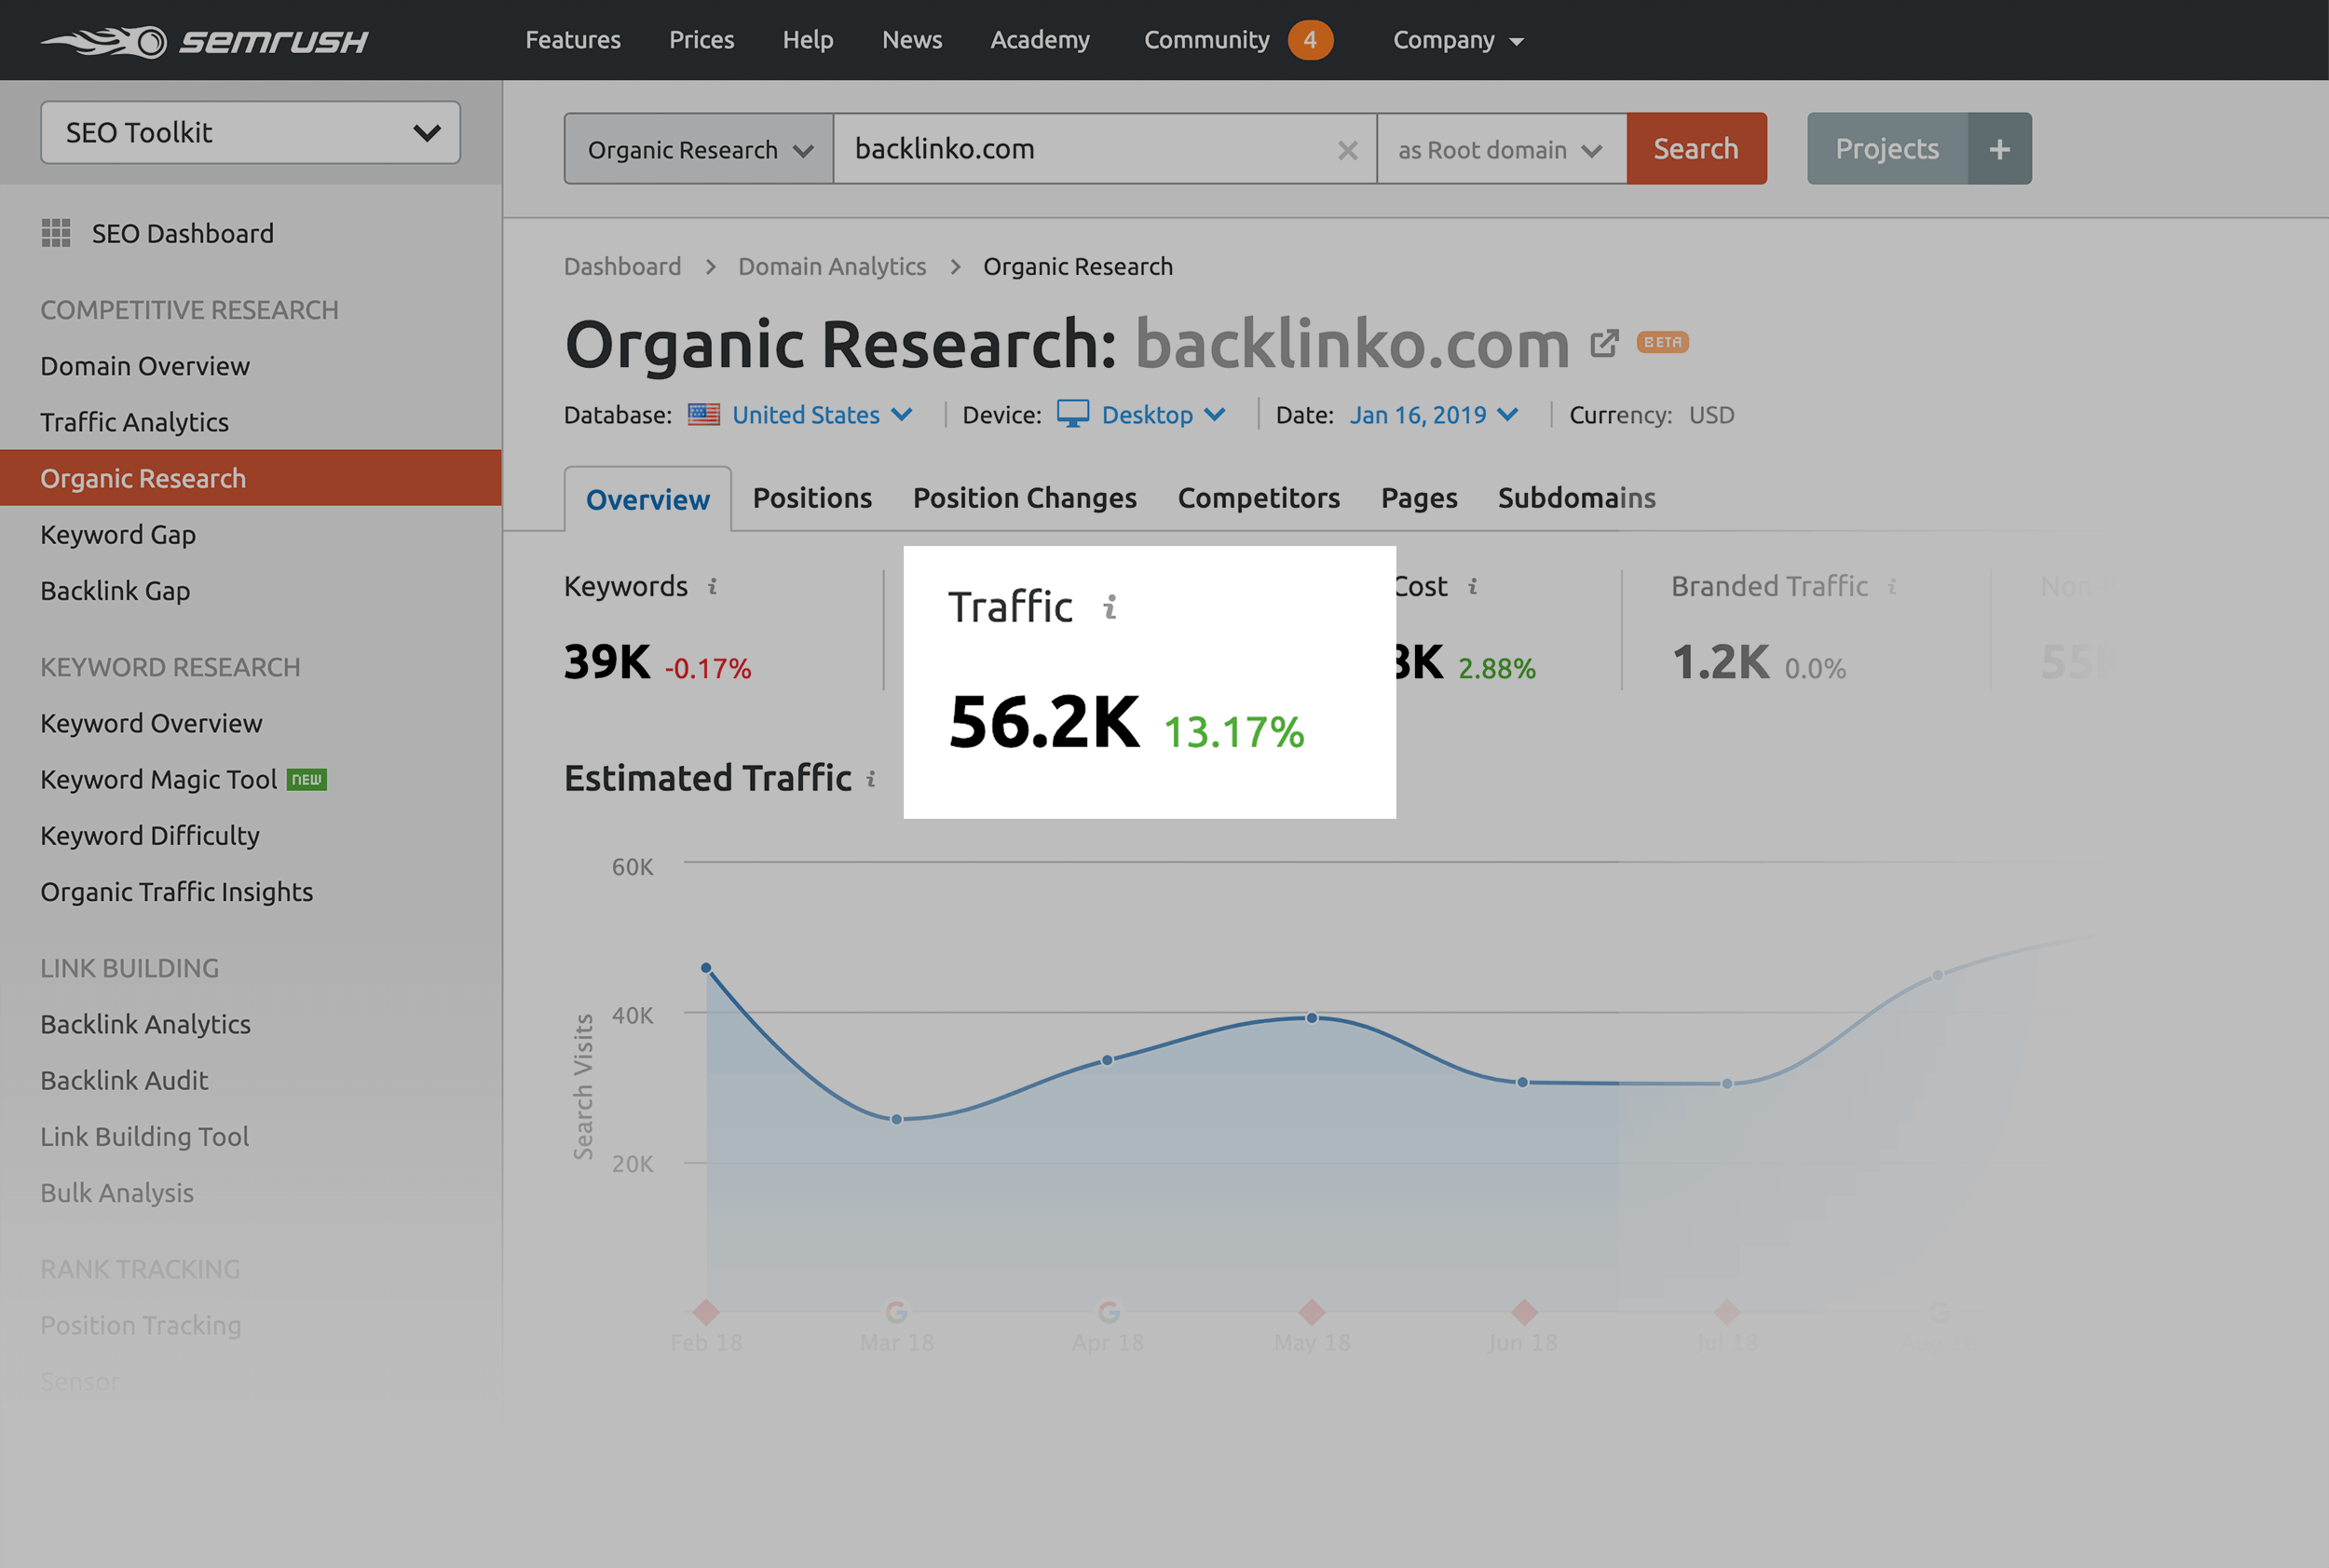 Organic research traffic